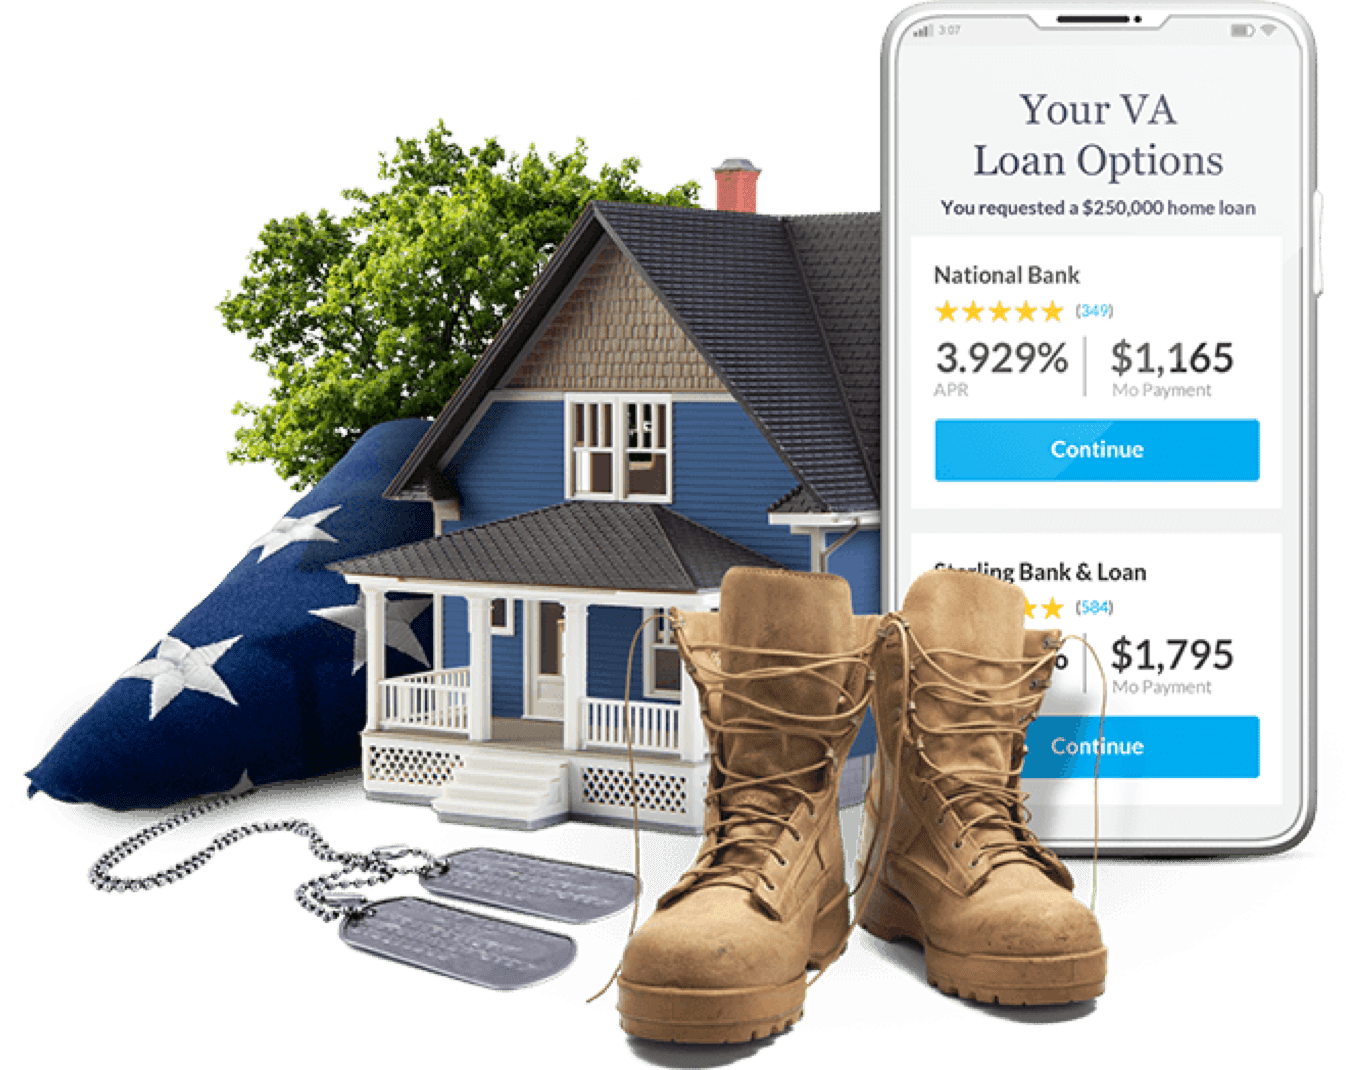 Your VA Loan Options